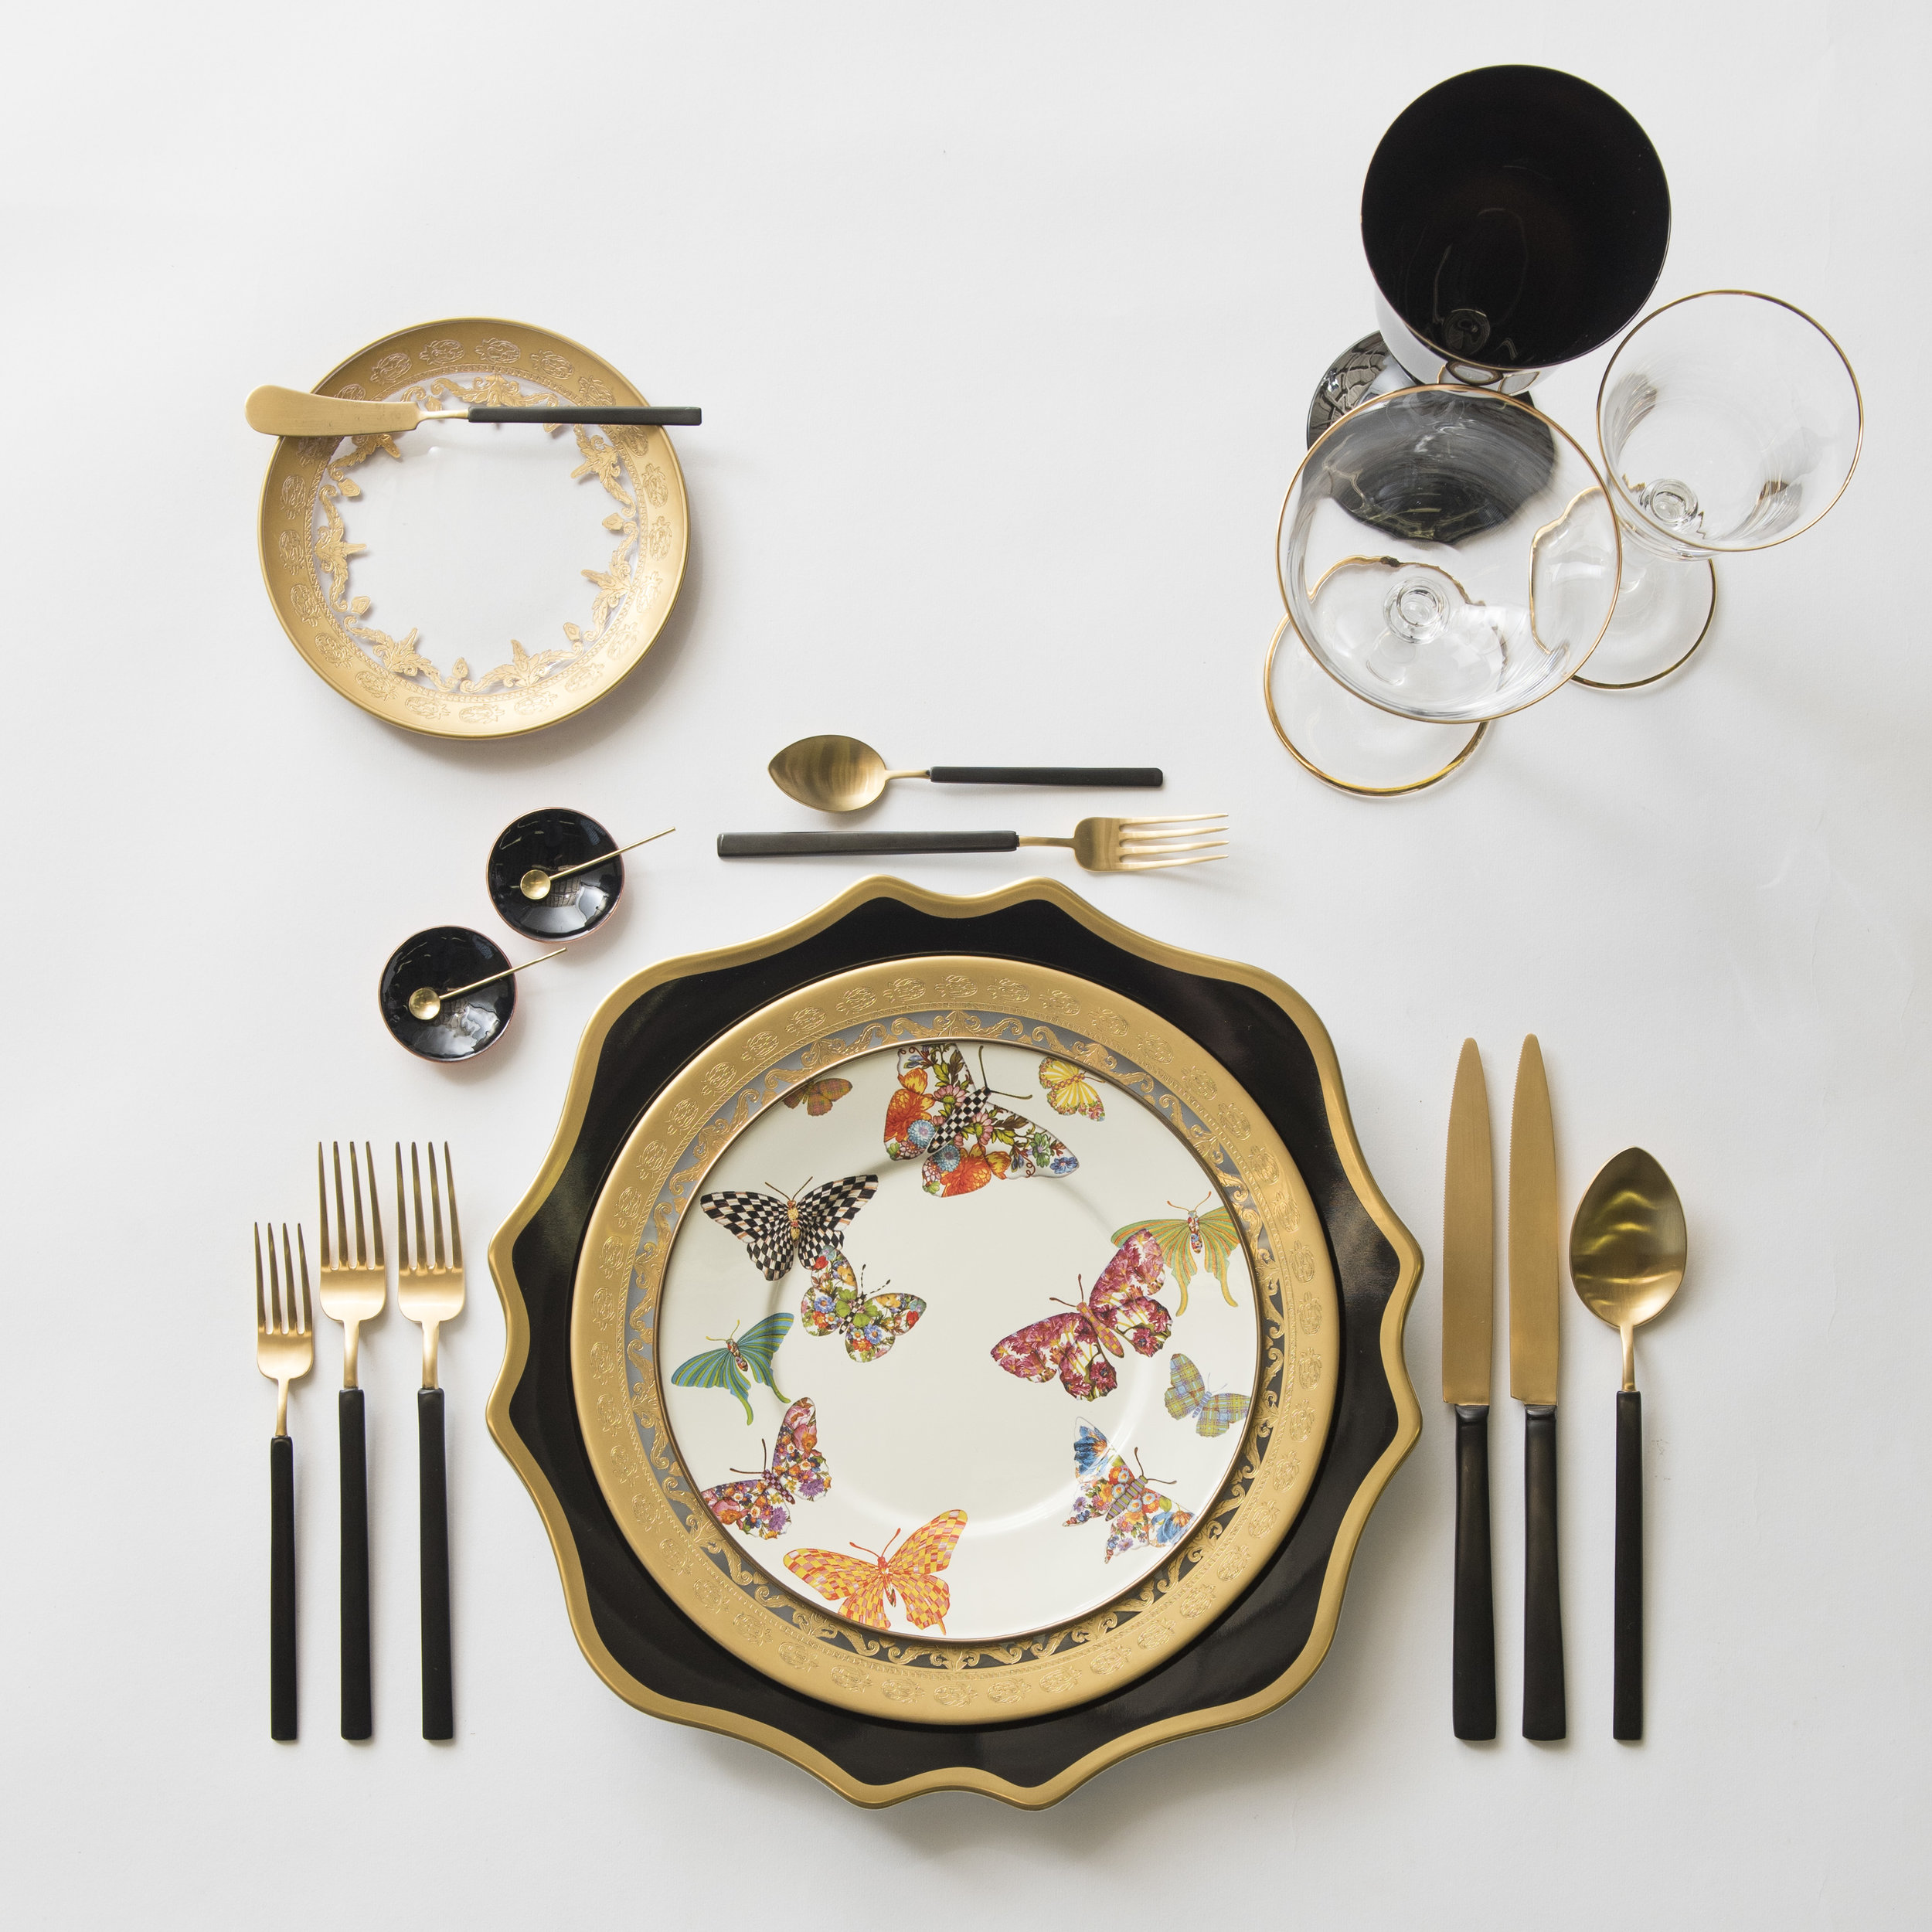 RENT: Anna Weatherley Chargers in Black/Gold + Versailles Glass Dinnerware in 24k Gold + MacKenzie-Childs Butterfly Garden Collection + Axel Flatware in Matte 24k Gold/Black + Chloe 24k Gold Rimmed Stemware + Chloe 24k Gold Rimmed Goblet in Black + Black Enamel Salt Cellars + Tiny Gold Spoons   SHOP: Chloe 24k Gold Rimmed Stemware + Black Enamel Salt Cellars + Tiny Gold Spoons